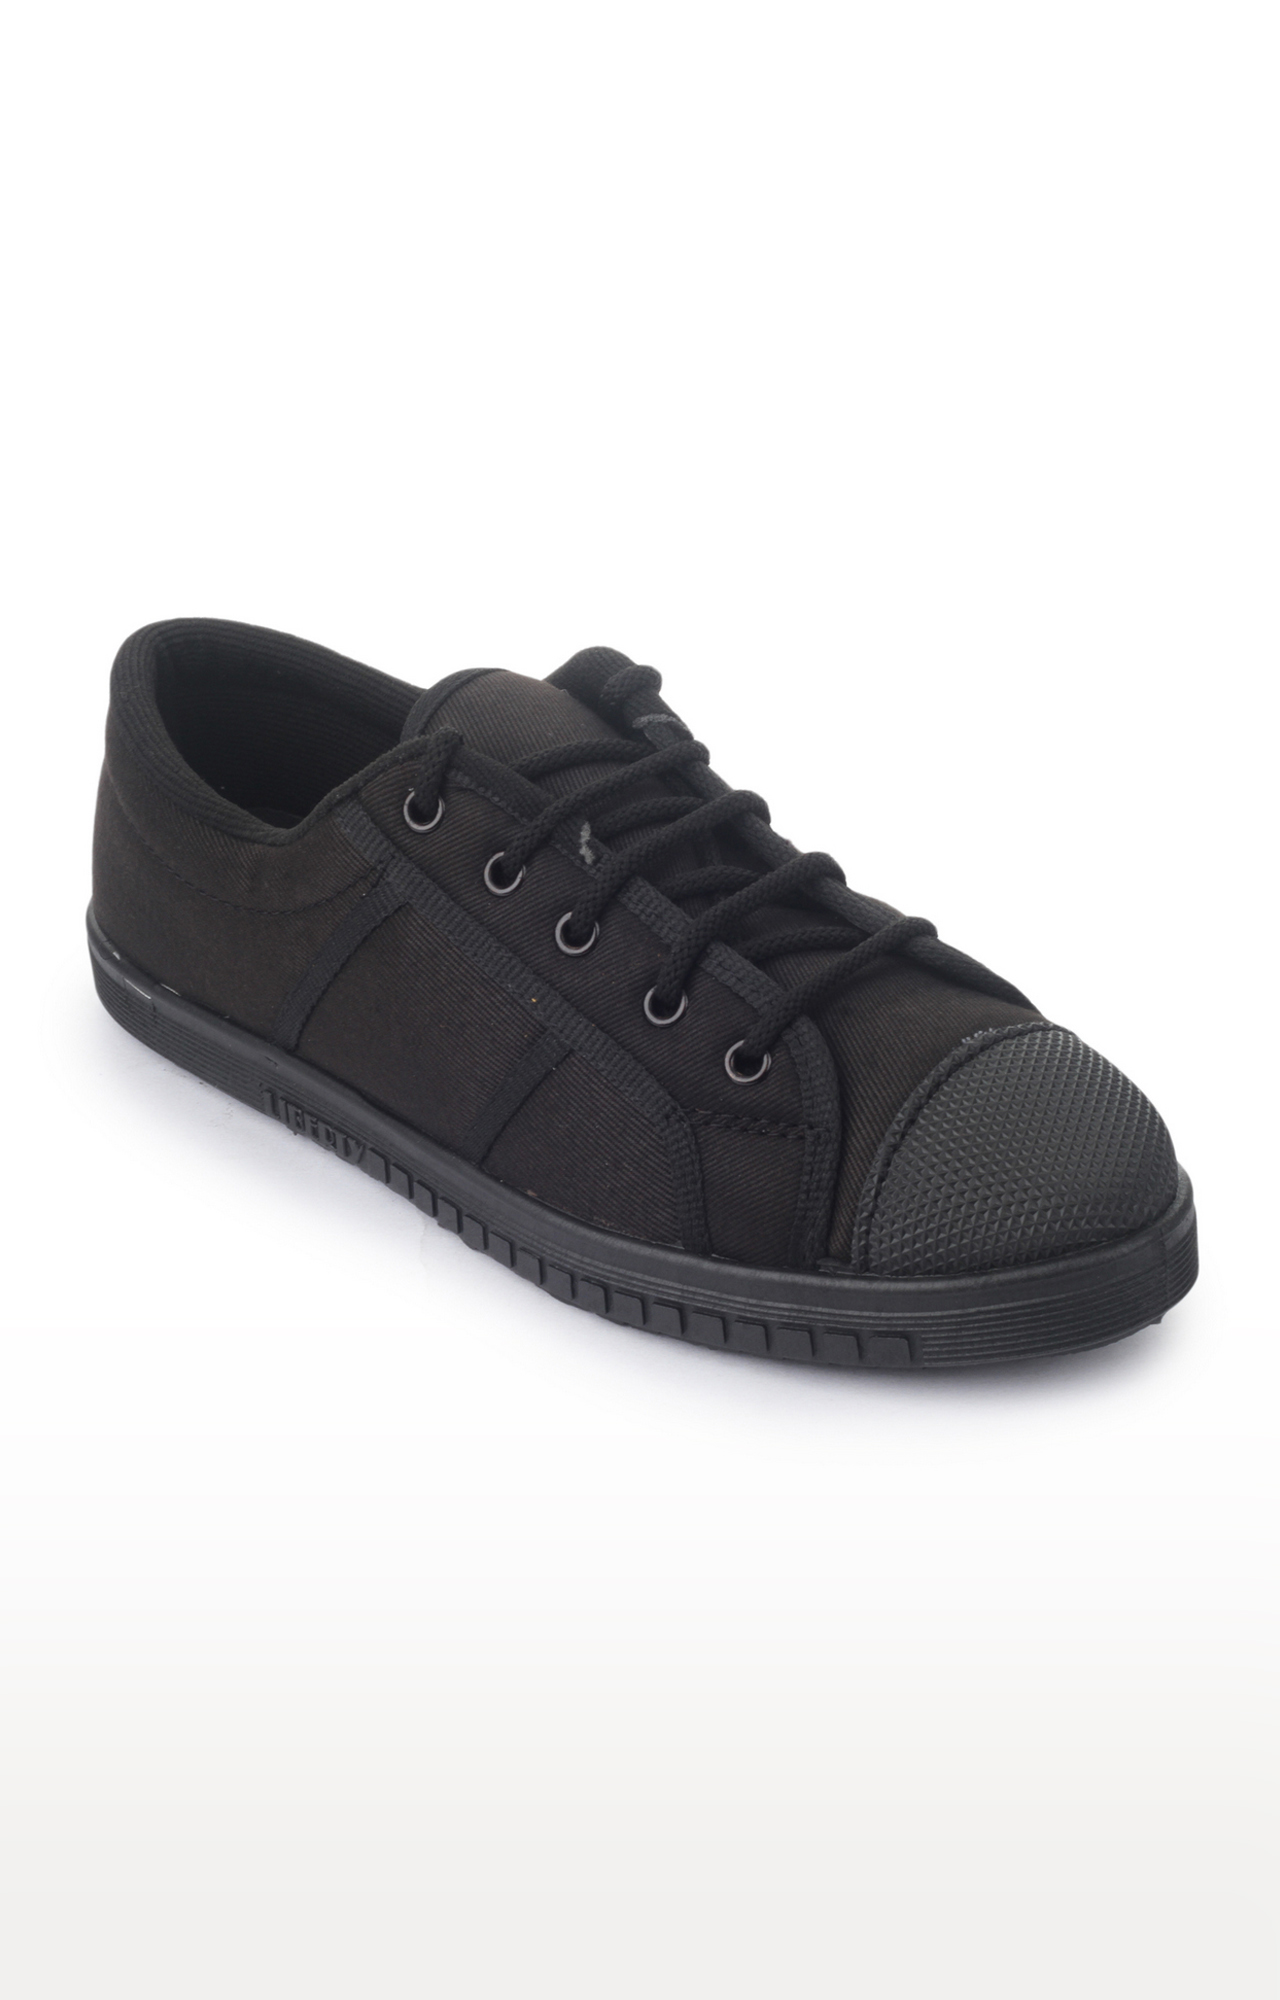 Liberty | Gliders by Liberty Unisex Black Sneakers